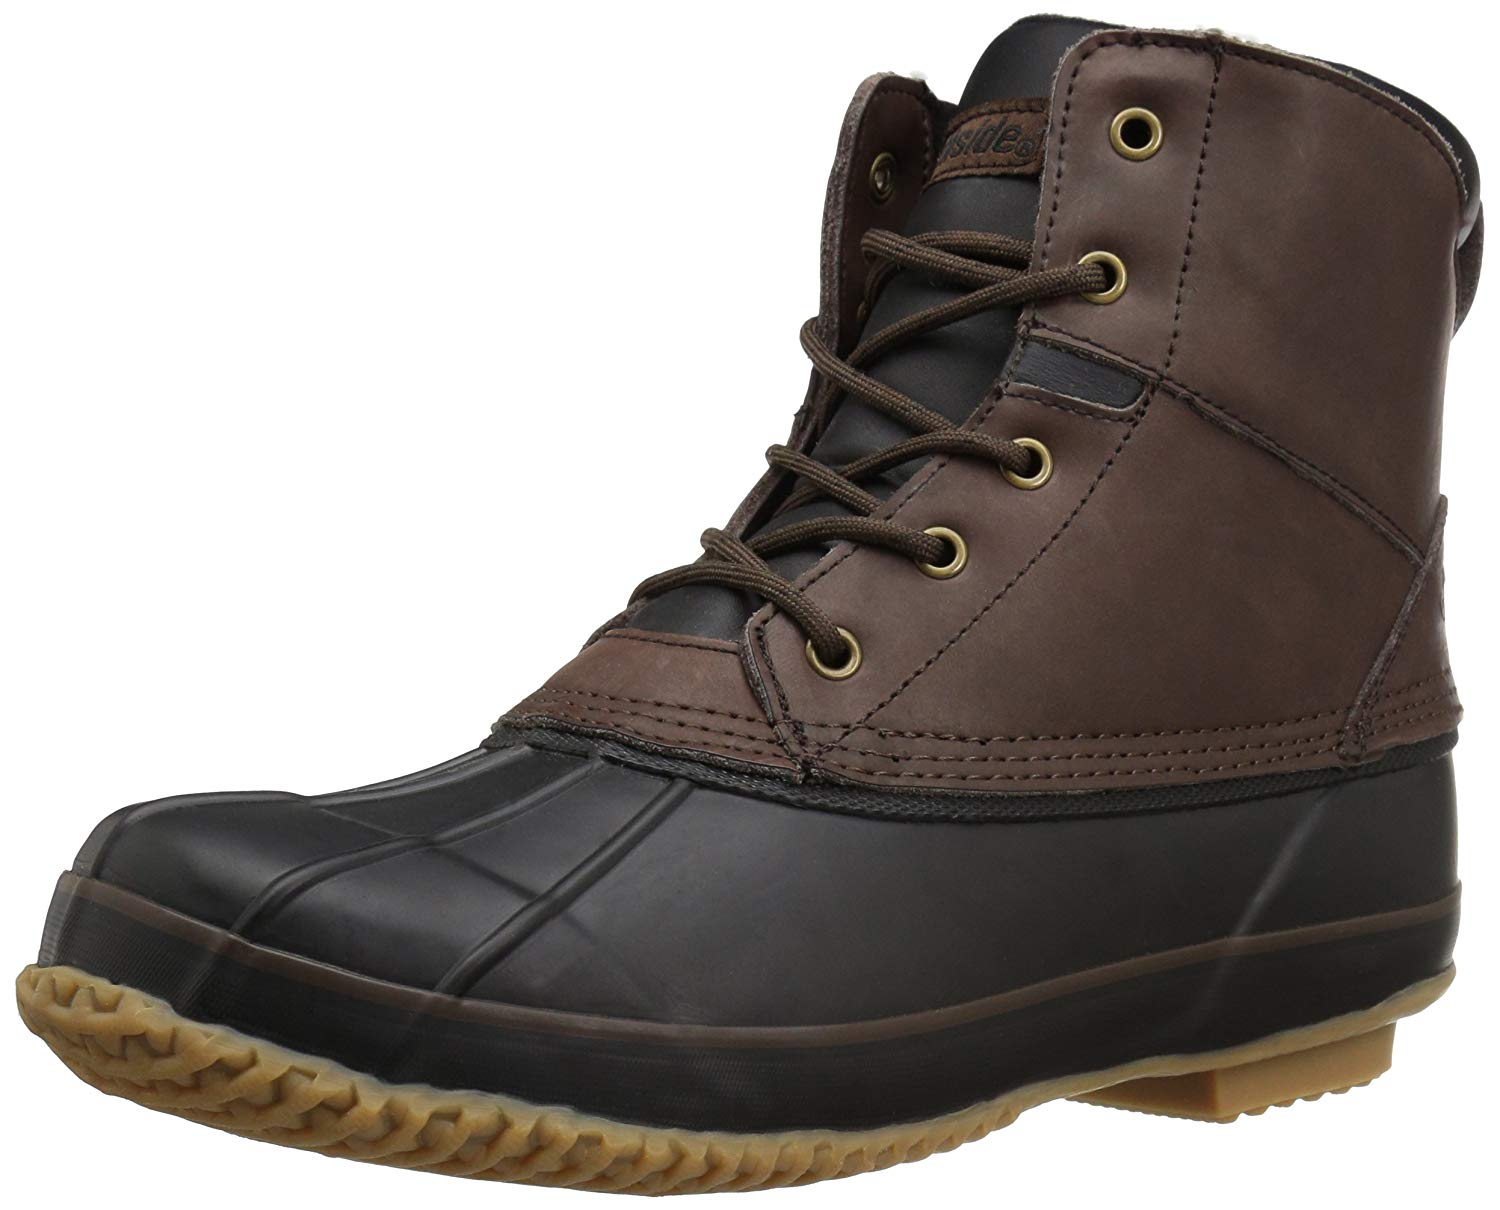 Northside Lewiston Men's Waterproof Lace-up Duck Boot